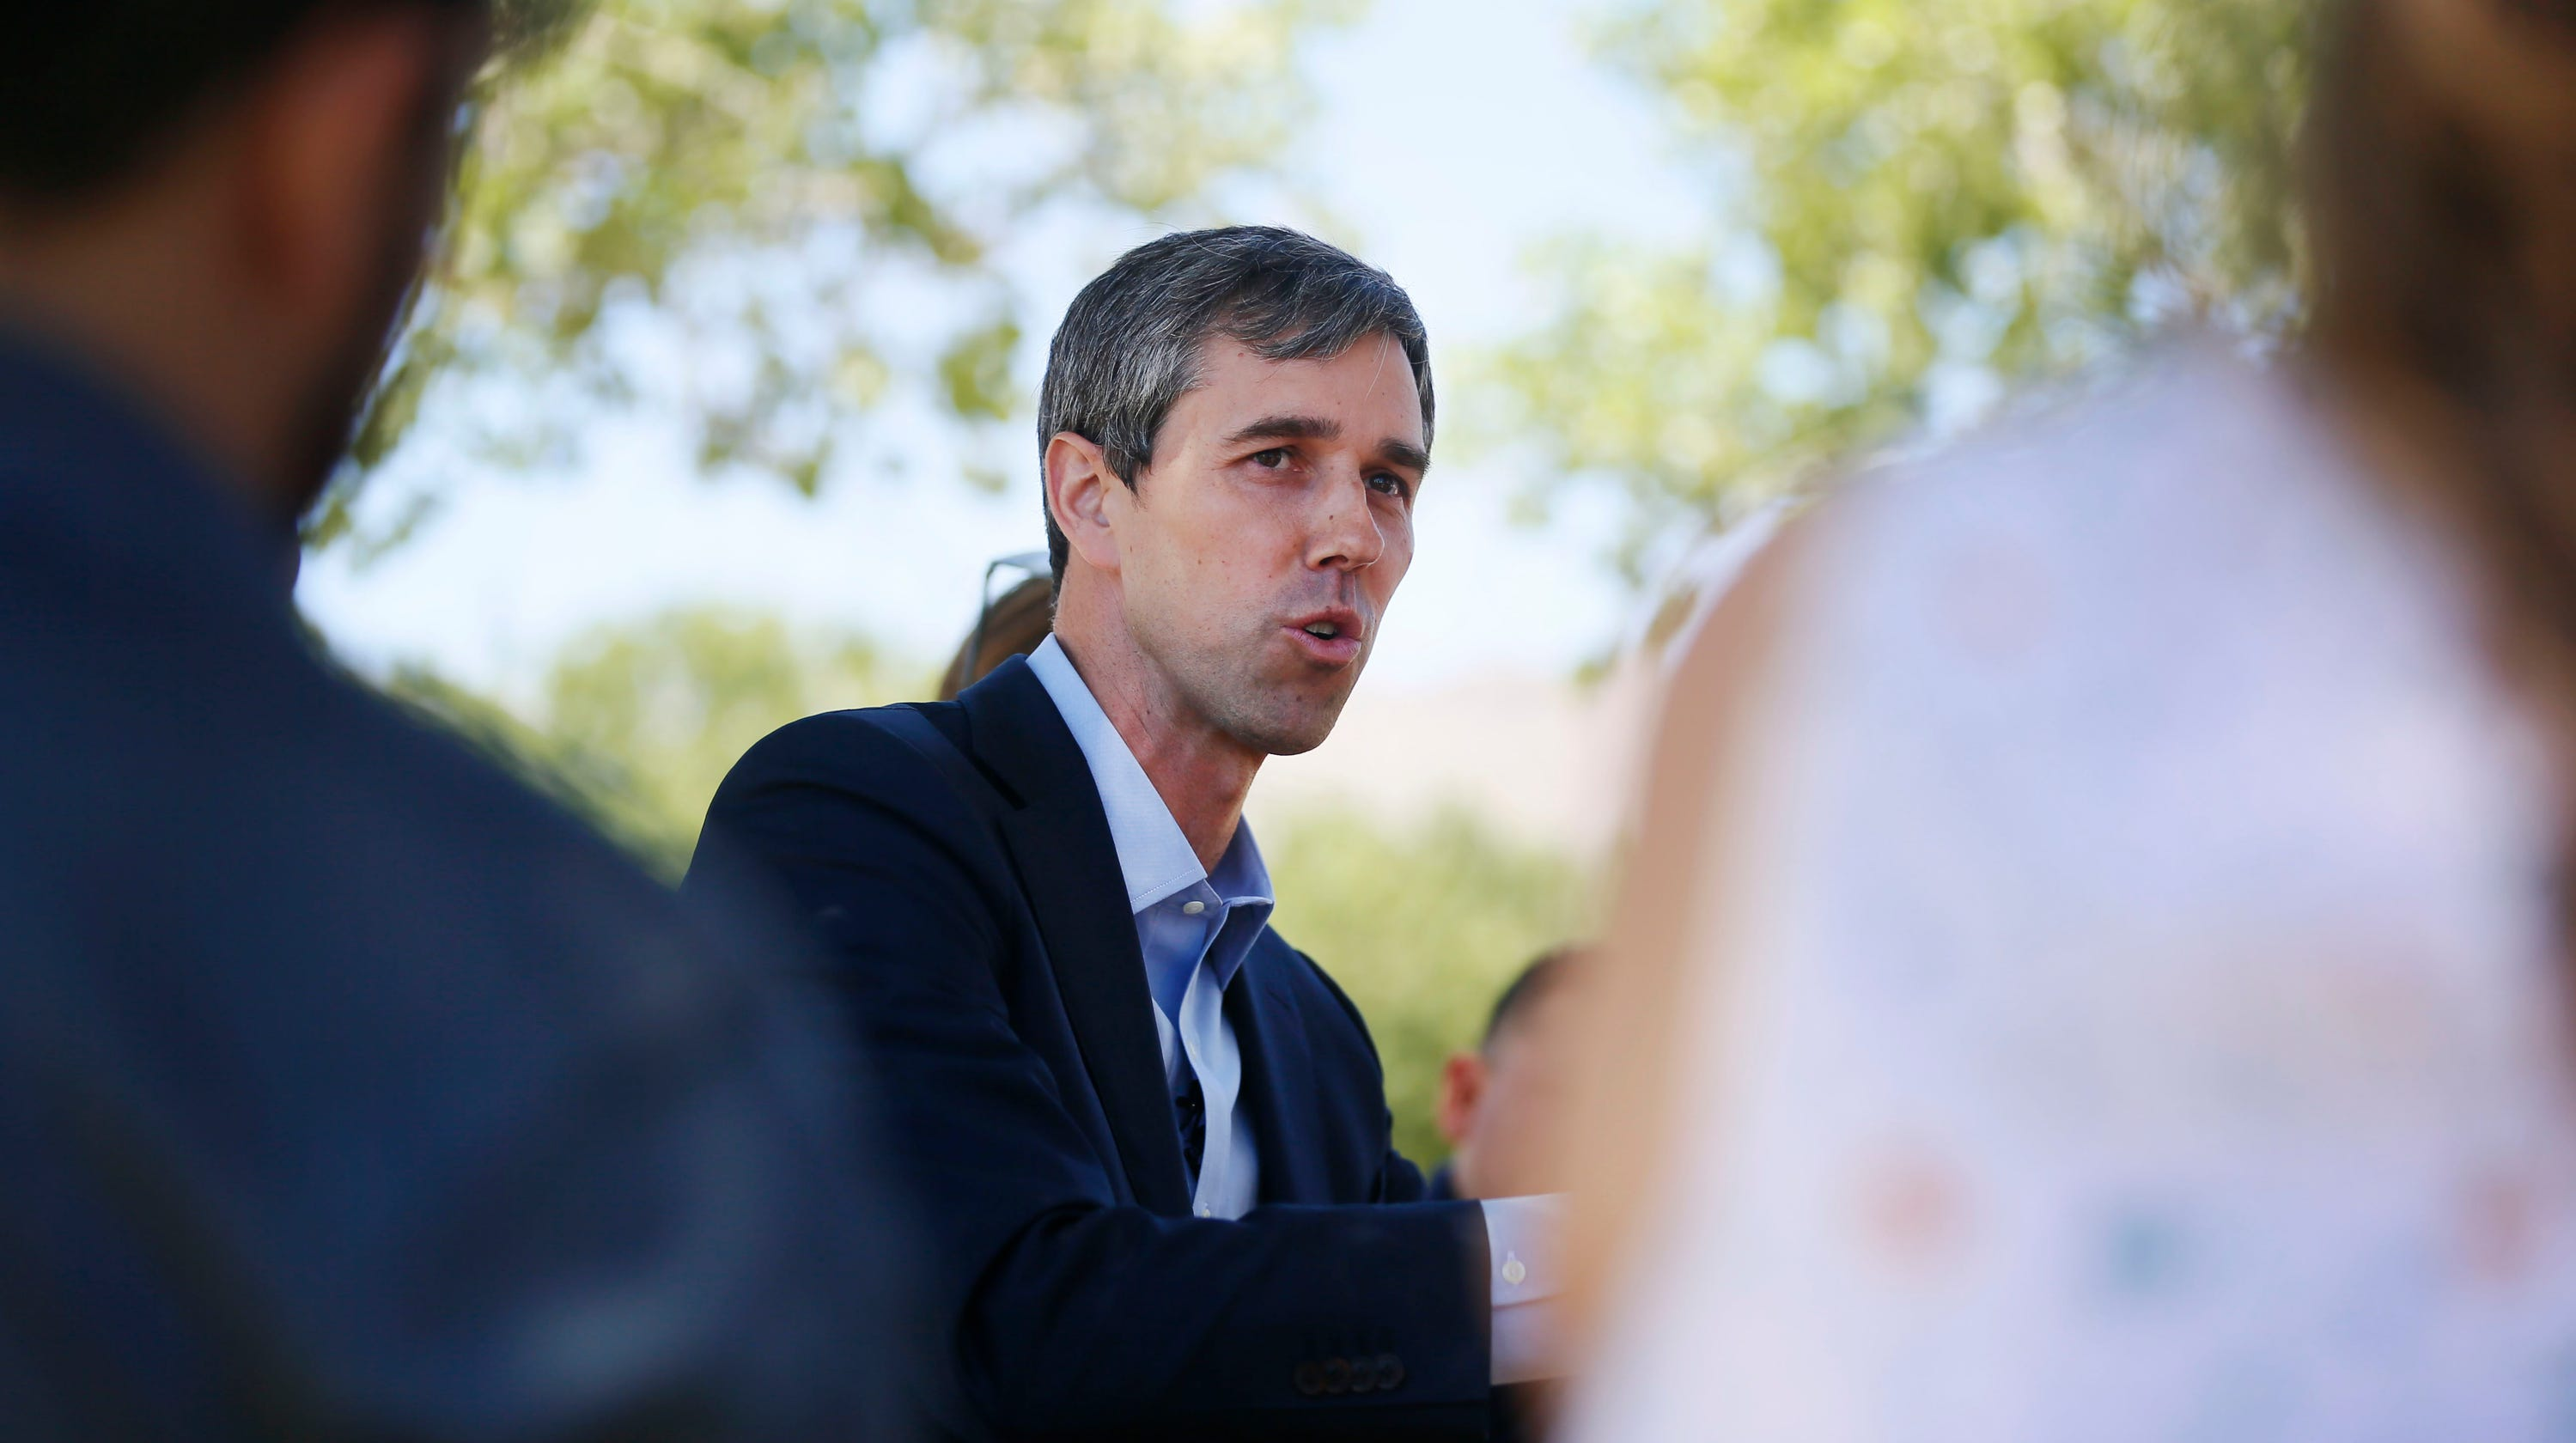 Beto O'Rourke Immigration Reform Plan 'In Our Own Image